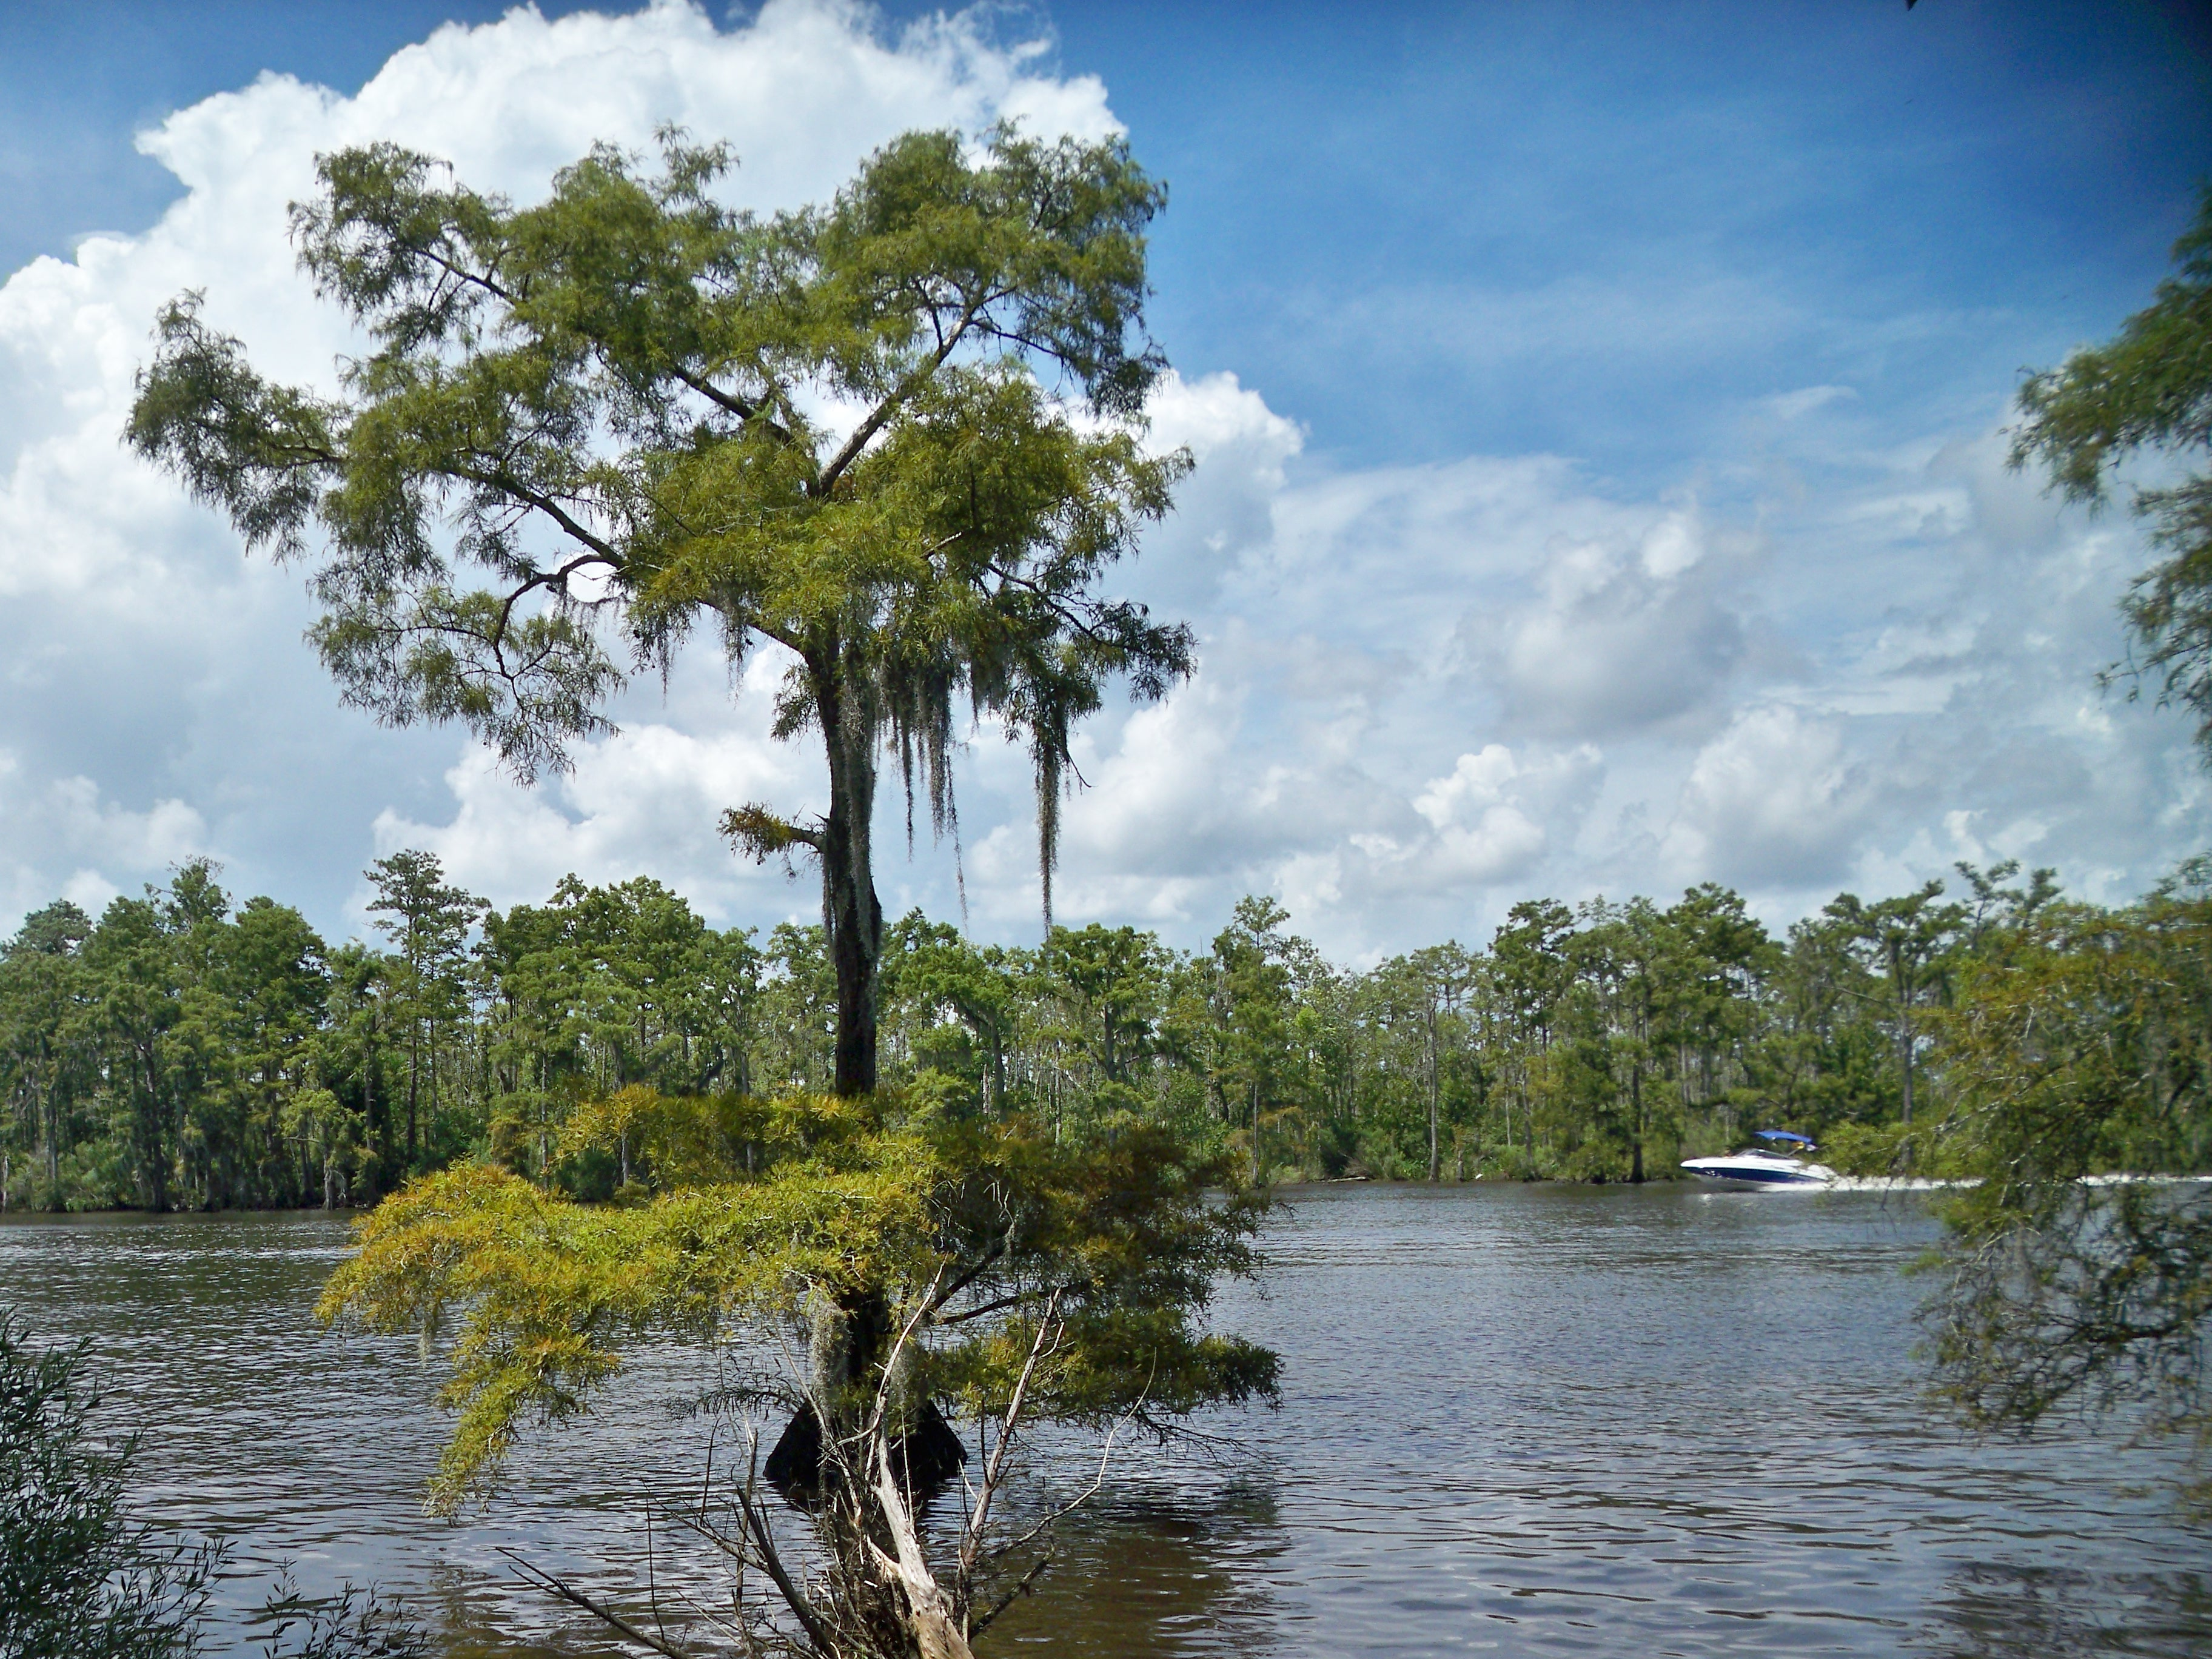 Tchefuncte River at Fairview-Riverside State Park | What I Saw